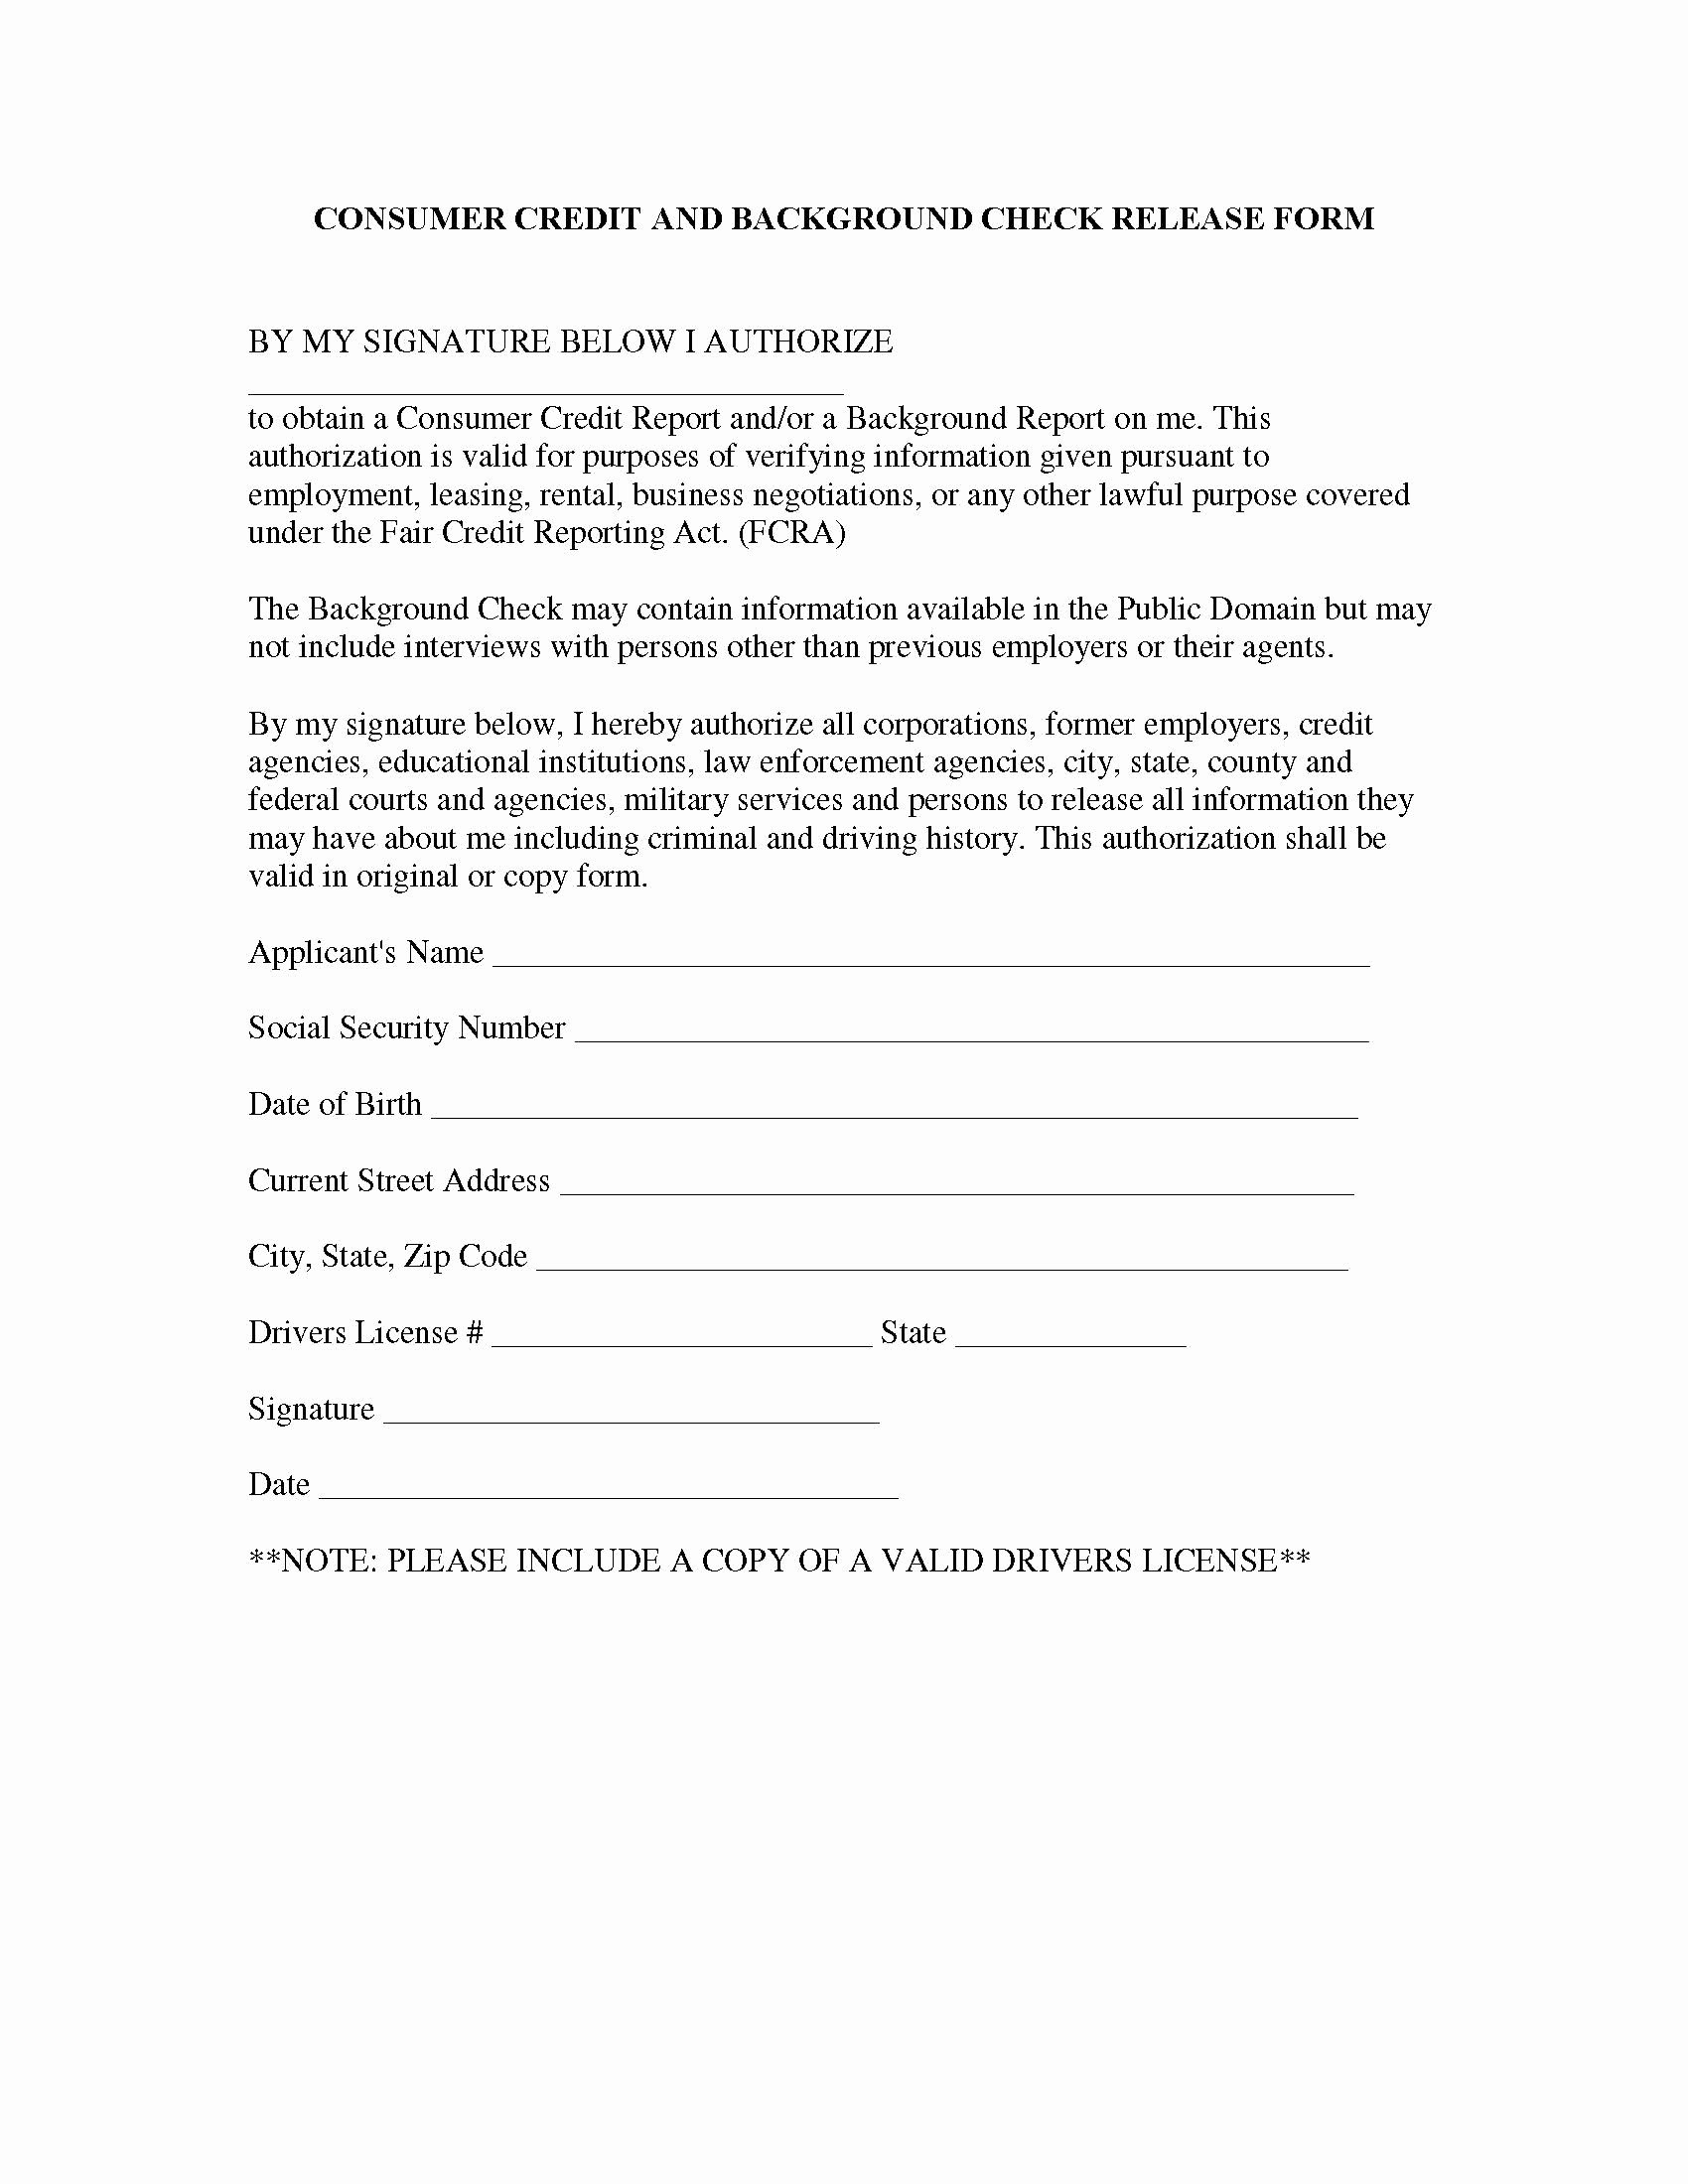 Release Information form Template